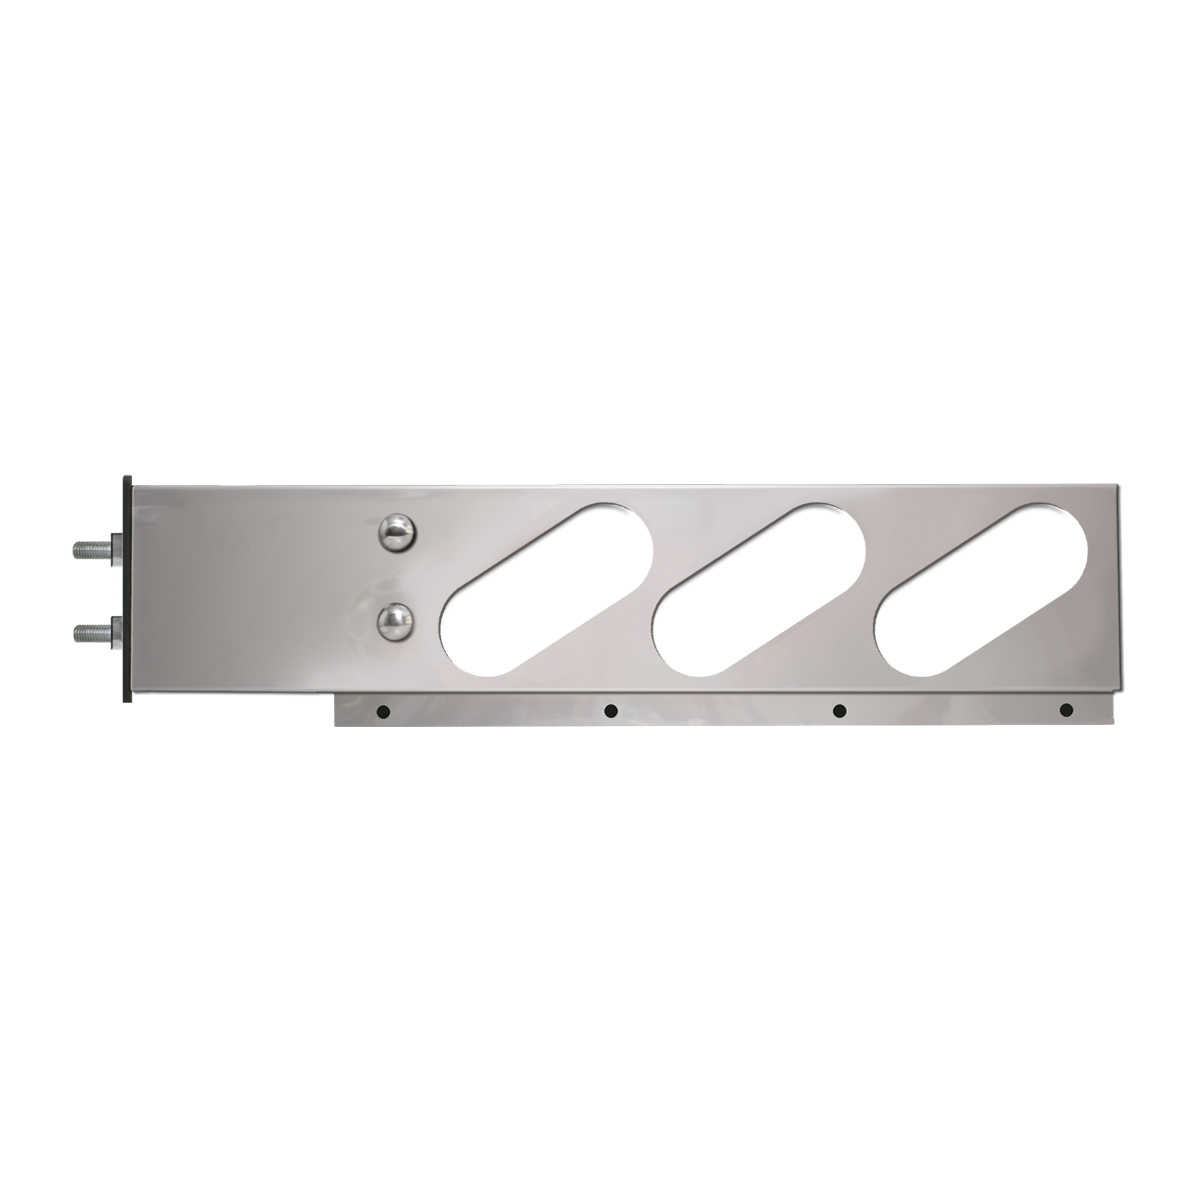 #87170 - Stainless Steel Two Piece Spring Loaded Light Bars Only